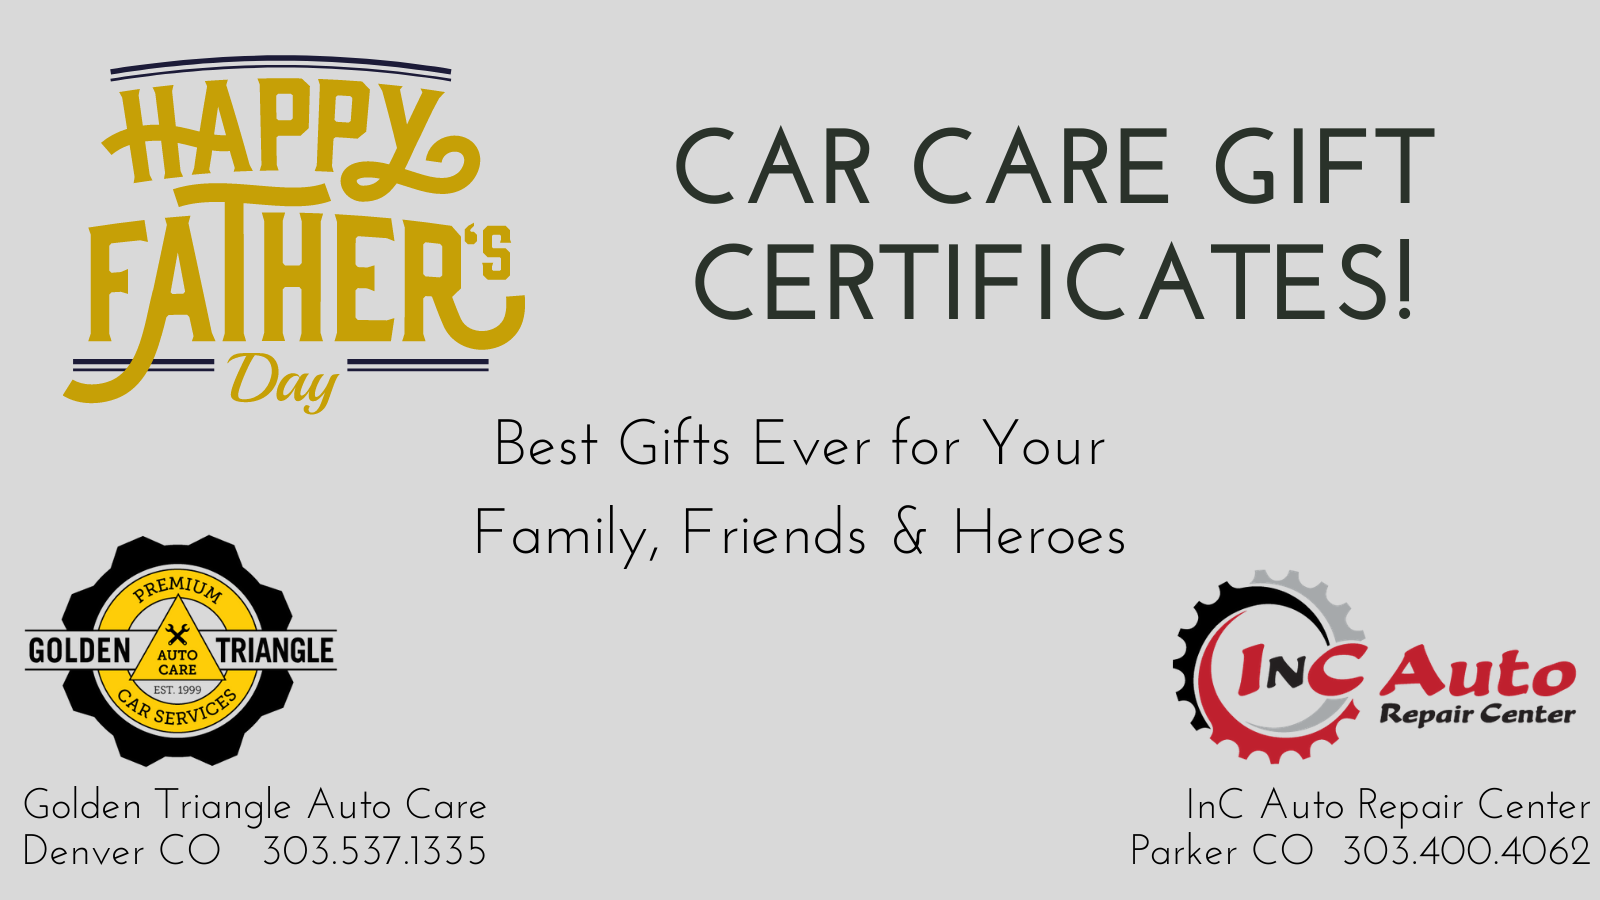 Car Care Gift Certificates in any amount from Golden Triangle Auto Care